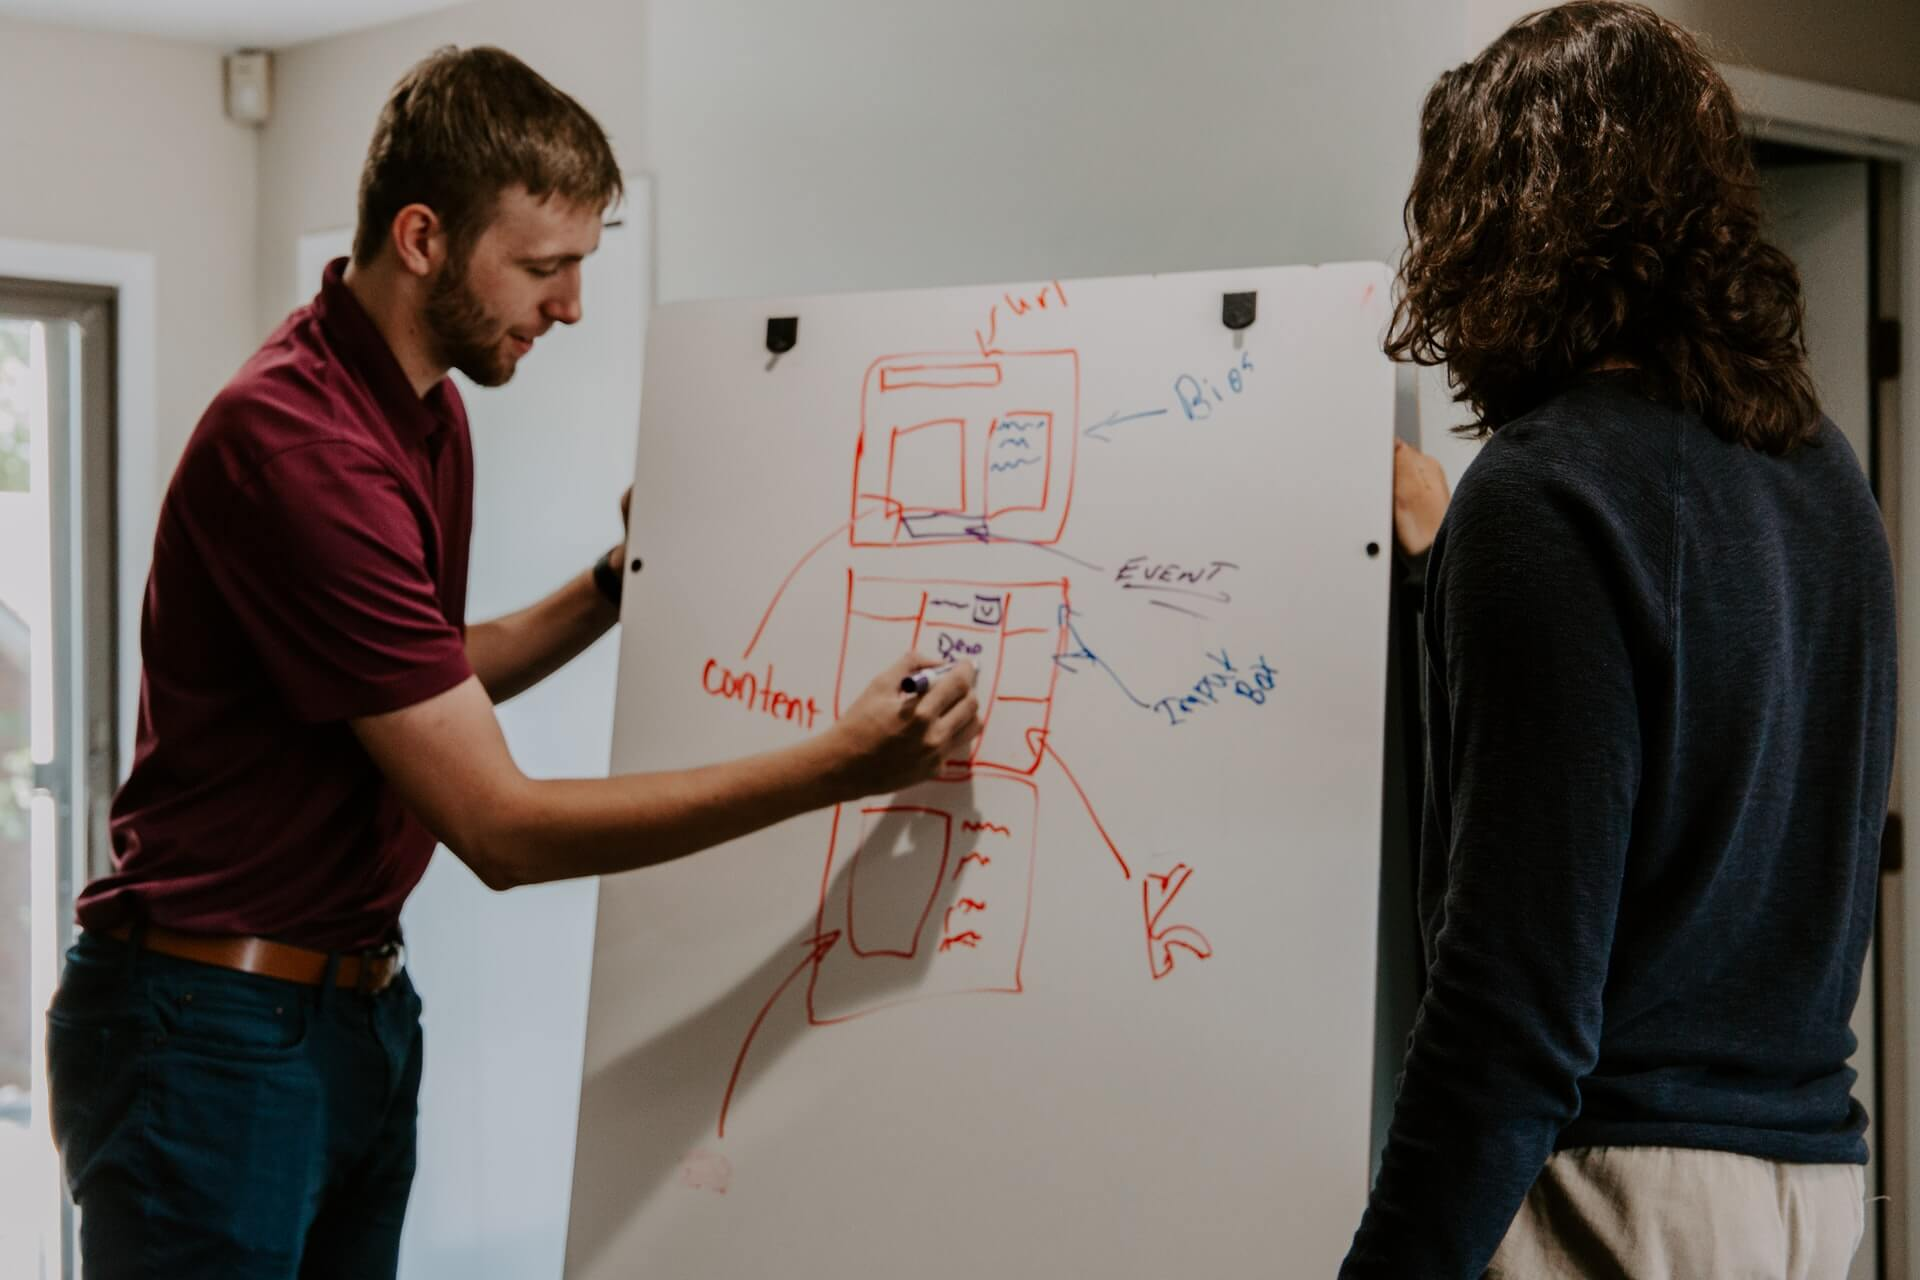 2 people writing on a white board